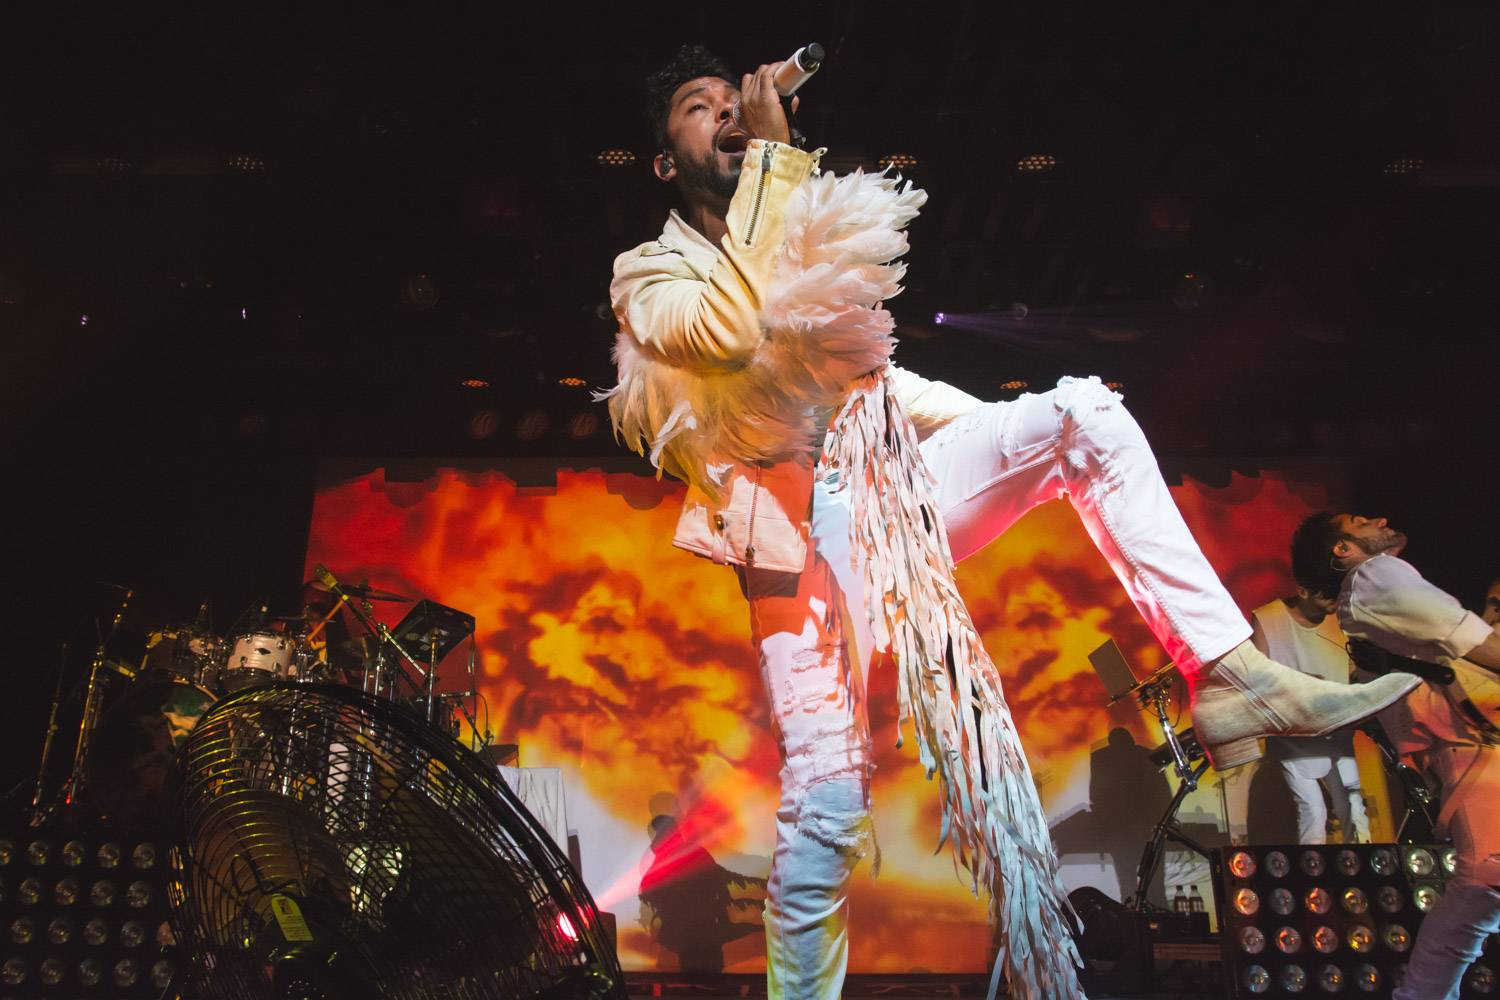 Miguel at the Commodore Ballroom, Vancouver, Aug 22 2015. Pavel Boiko photo.